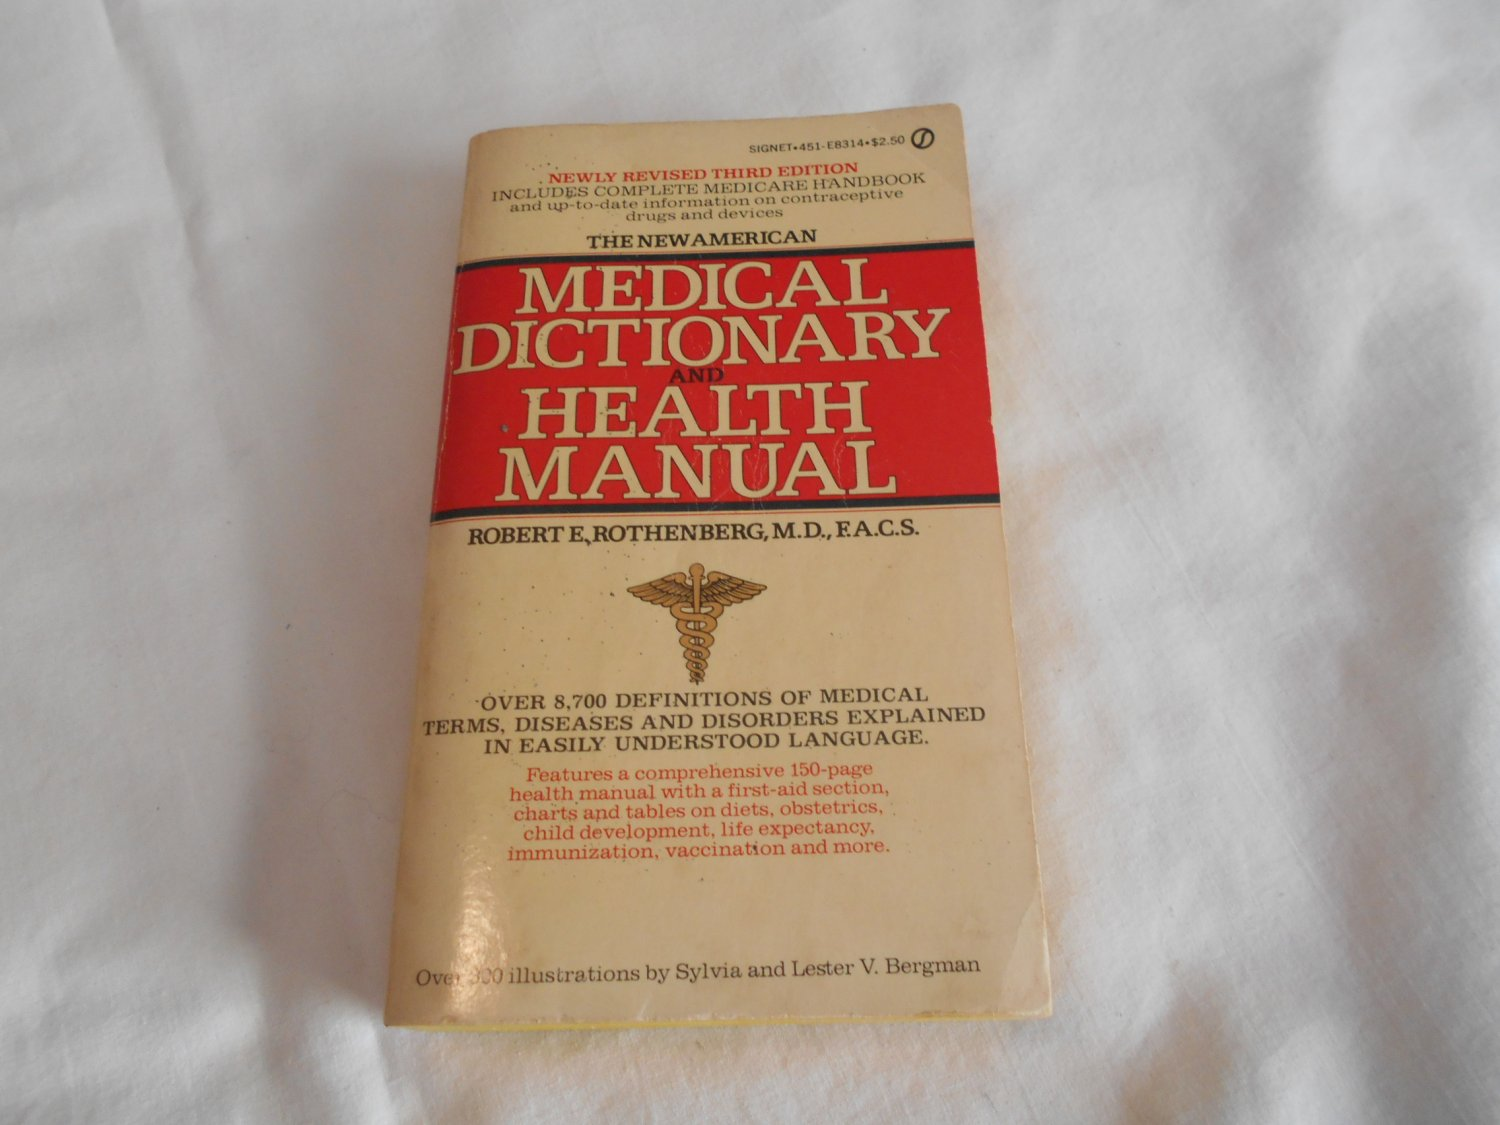 Medical Dictionary and Health Manual, The New American by Robert E. Rothenberg (1975) (B38)